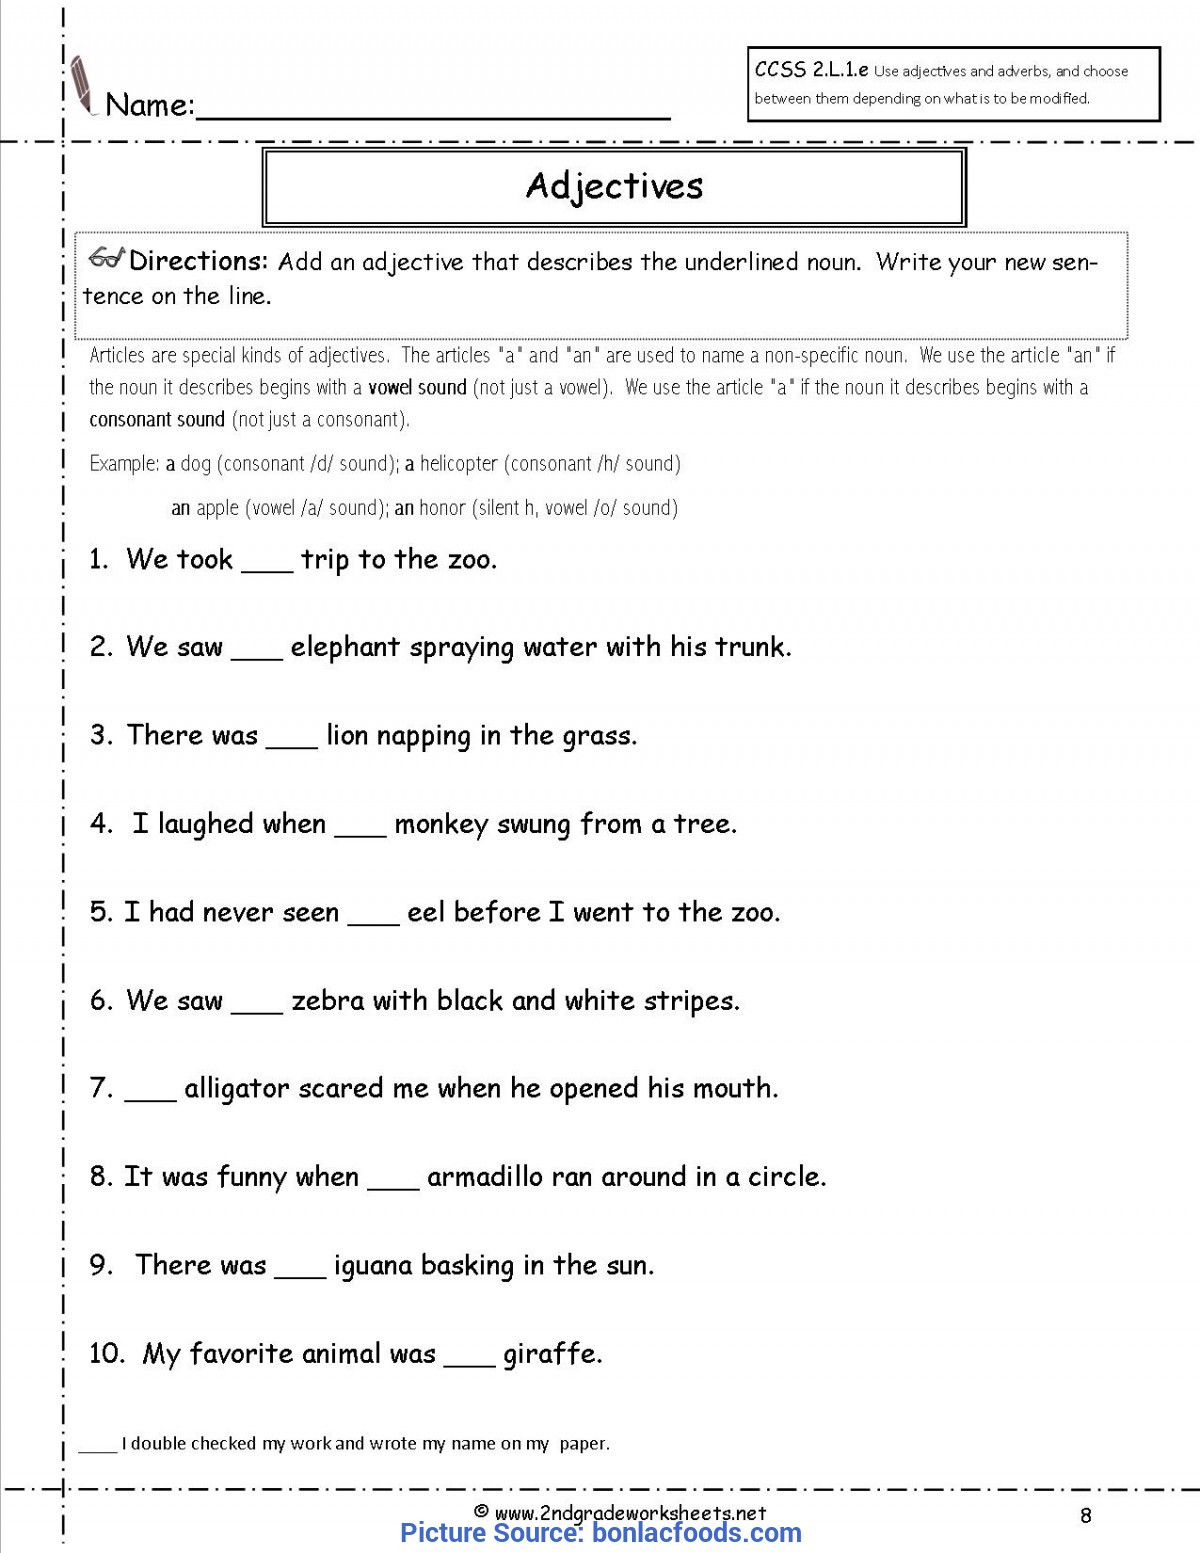 Pronoun Worksheets 5th Grade Binary Math Worksheet Pronoun Worksheets for Grade 2 Free